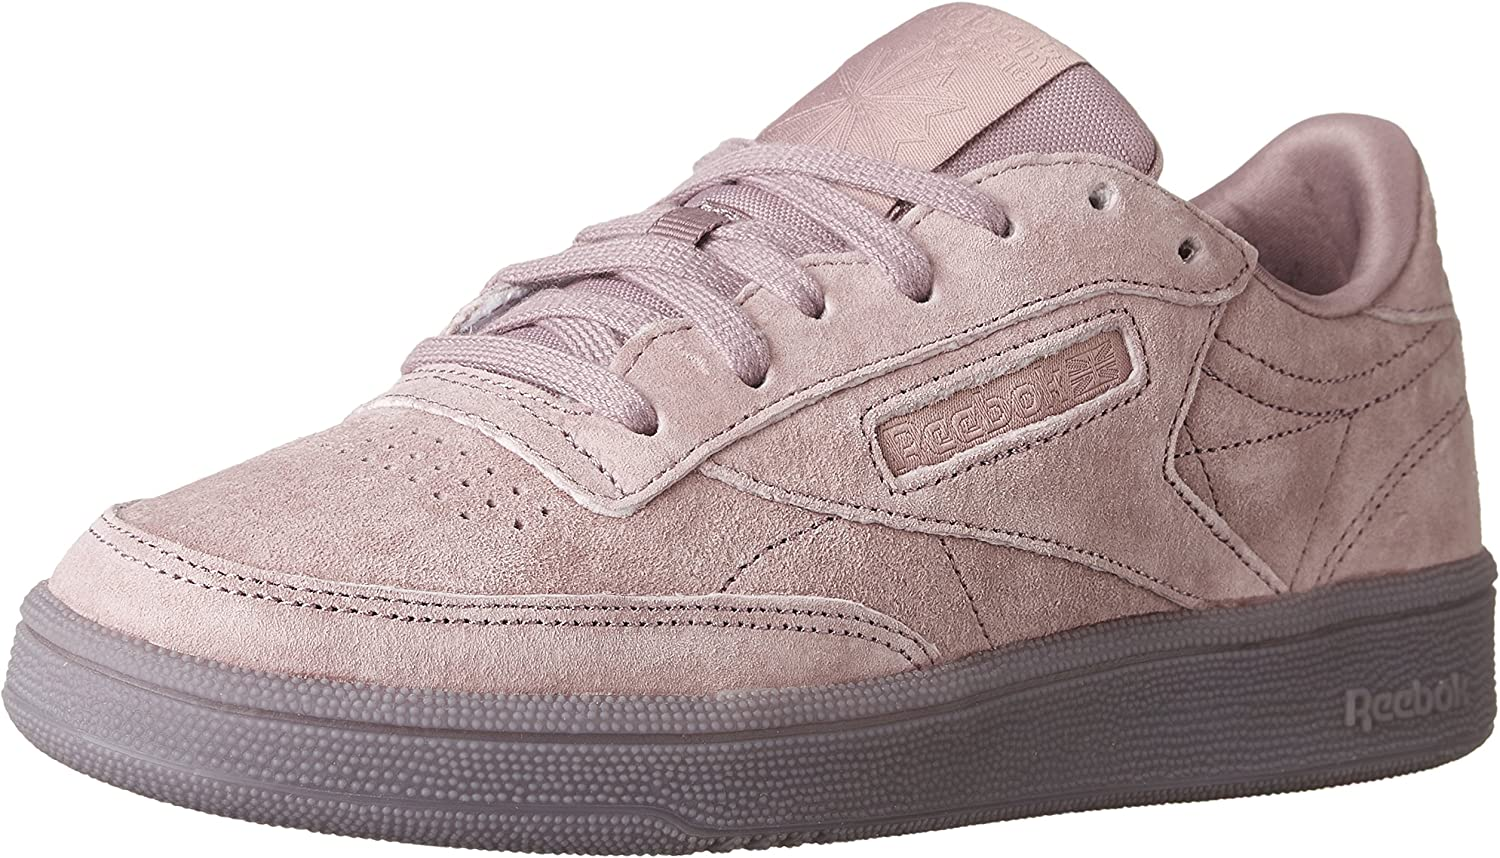 Reebok Women's Club C 85 Fashion Sneaker